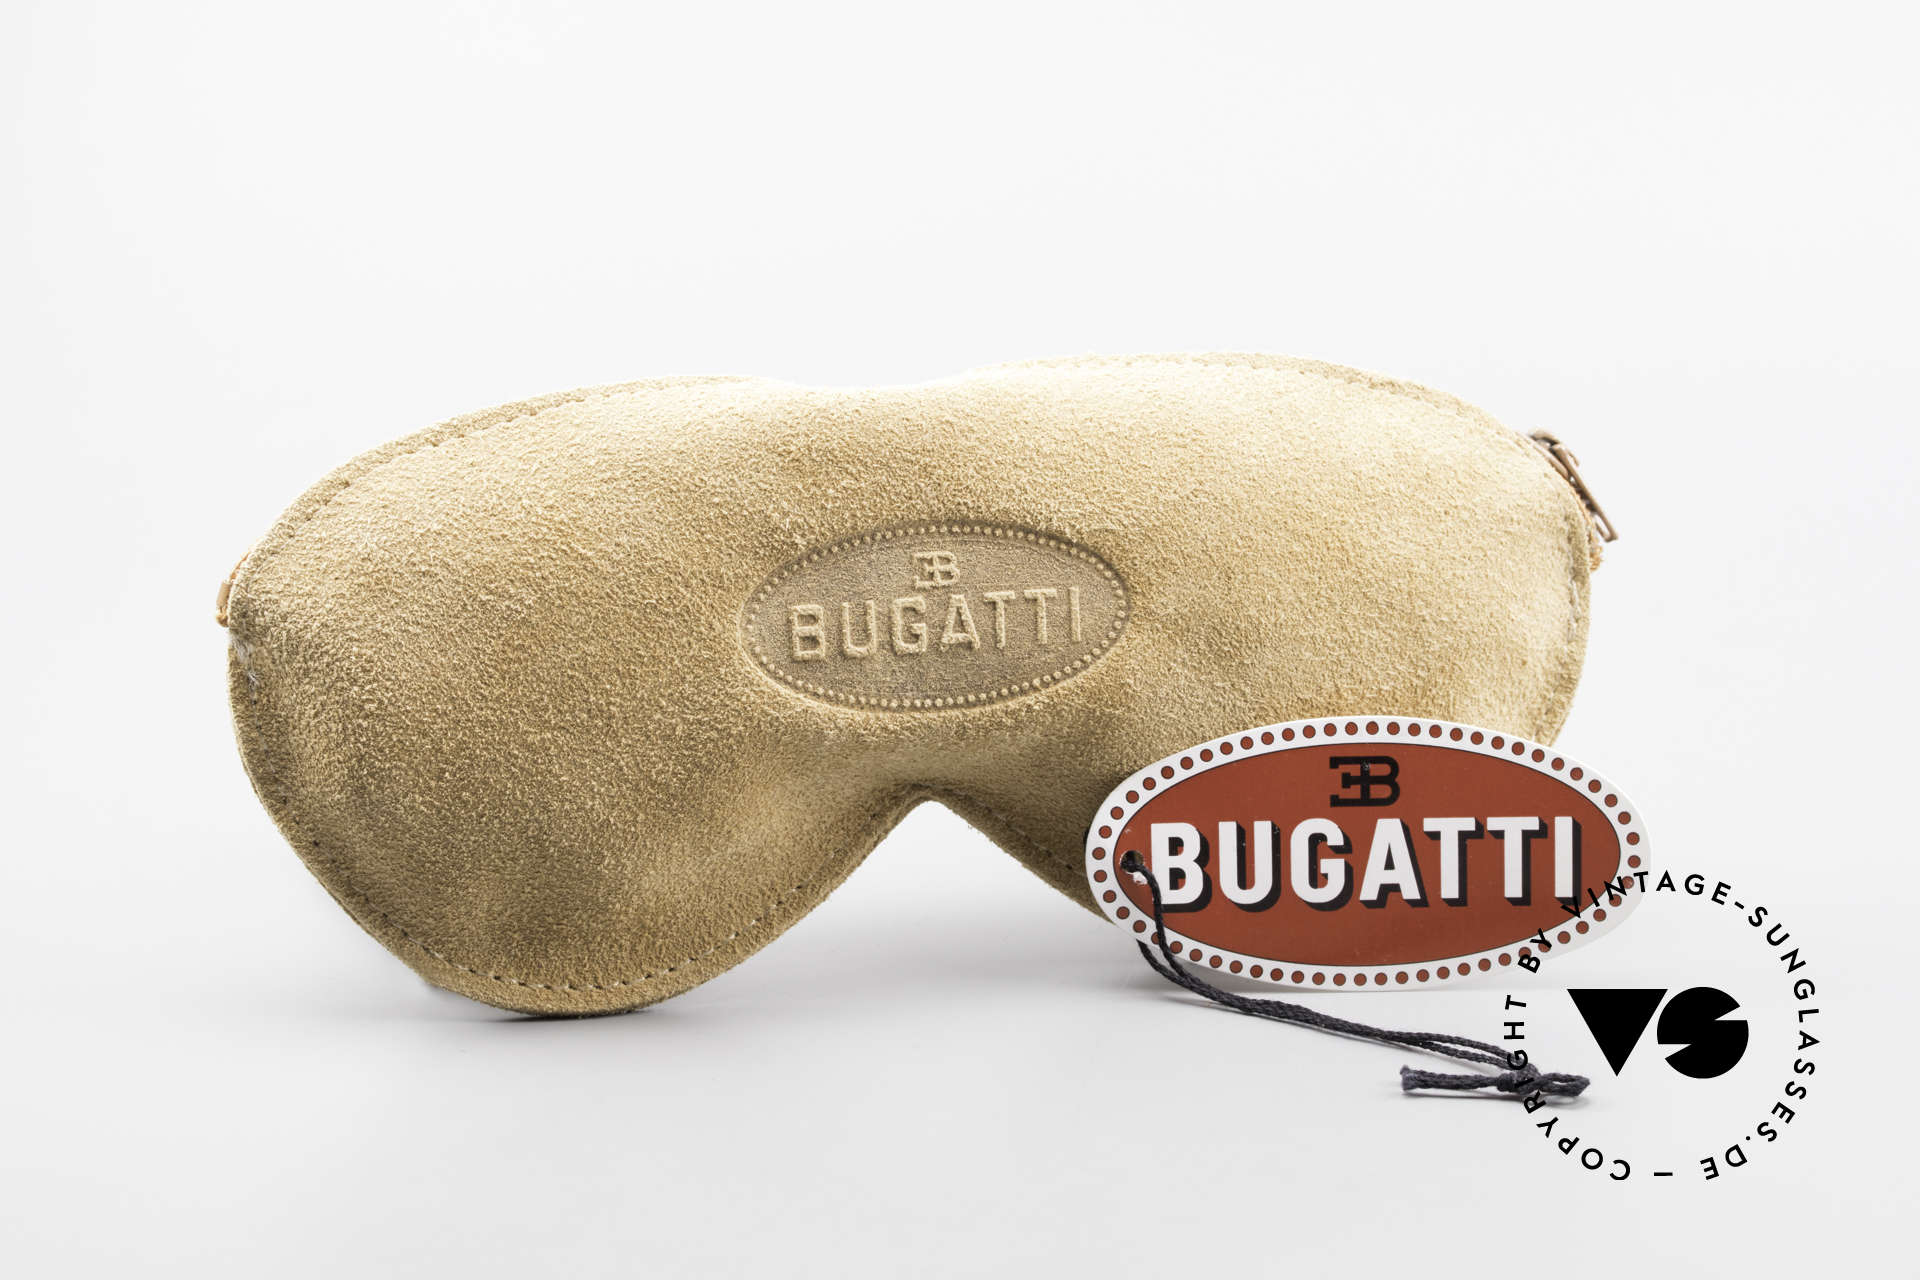 Bugatti 65996 Costly Mirrored Sun Lenses, Size: large, Made for Men